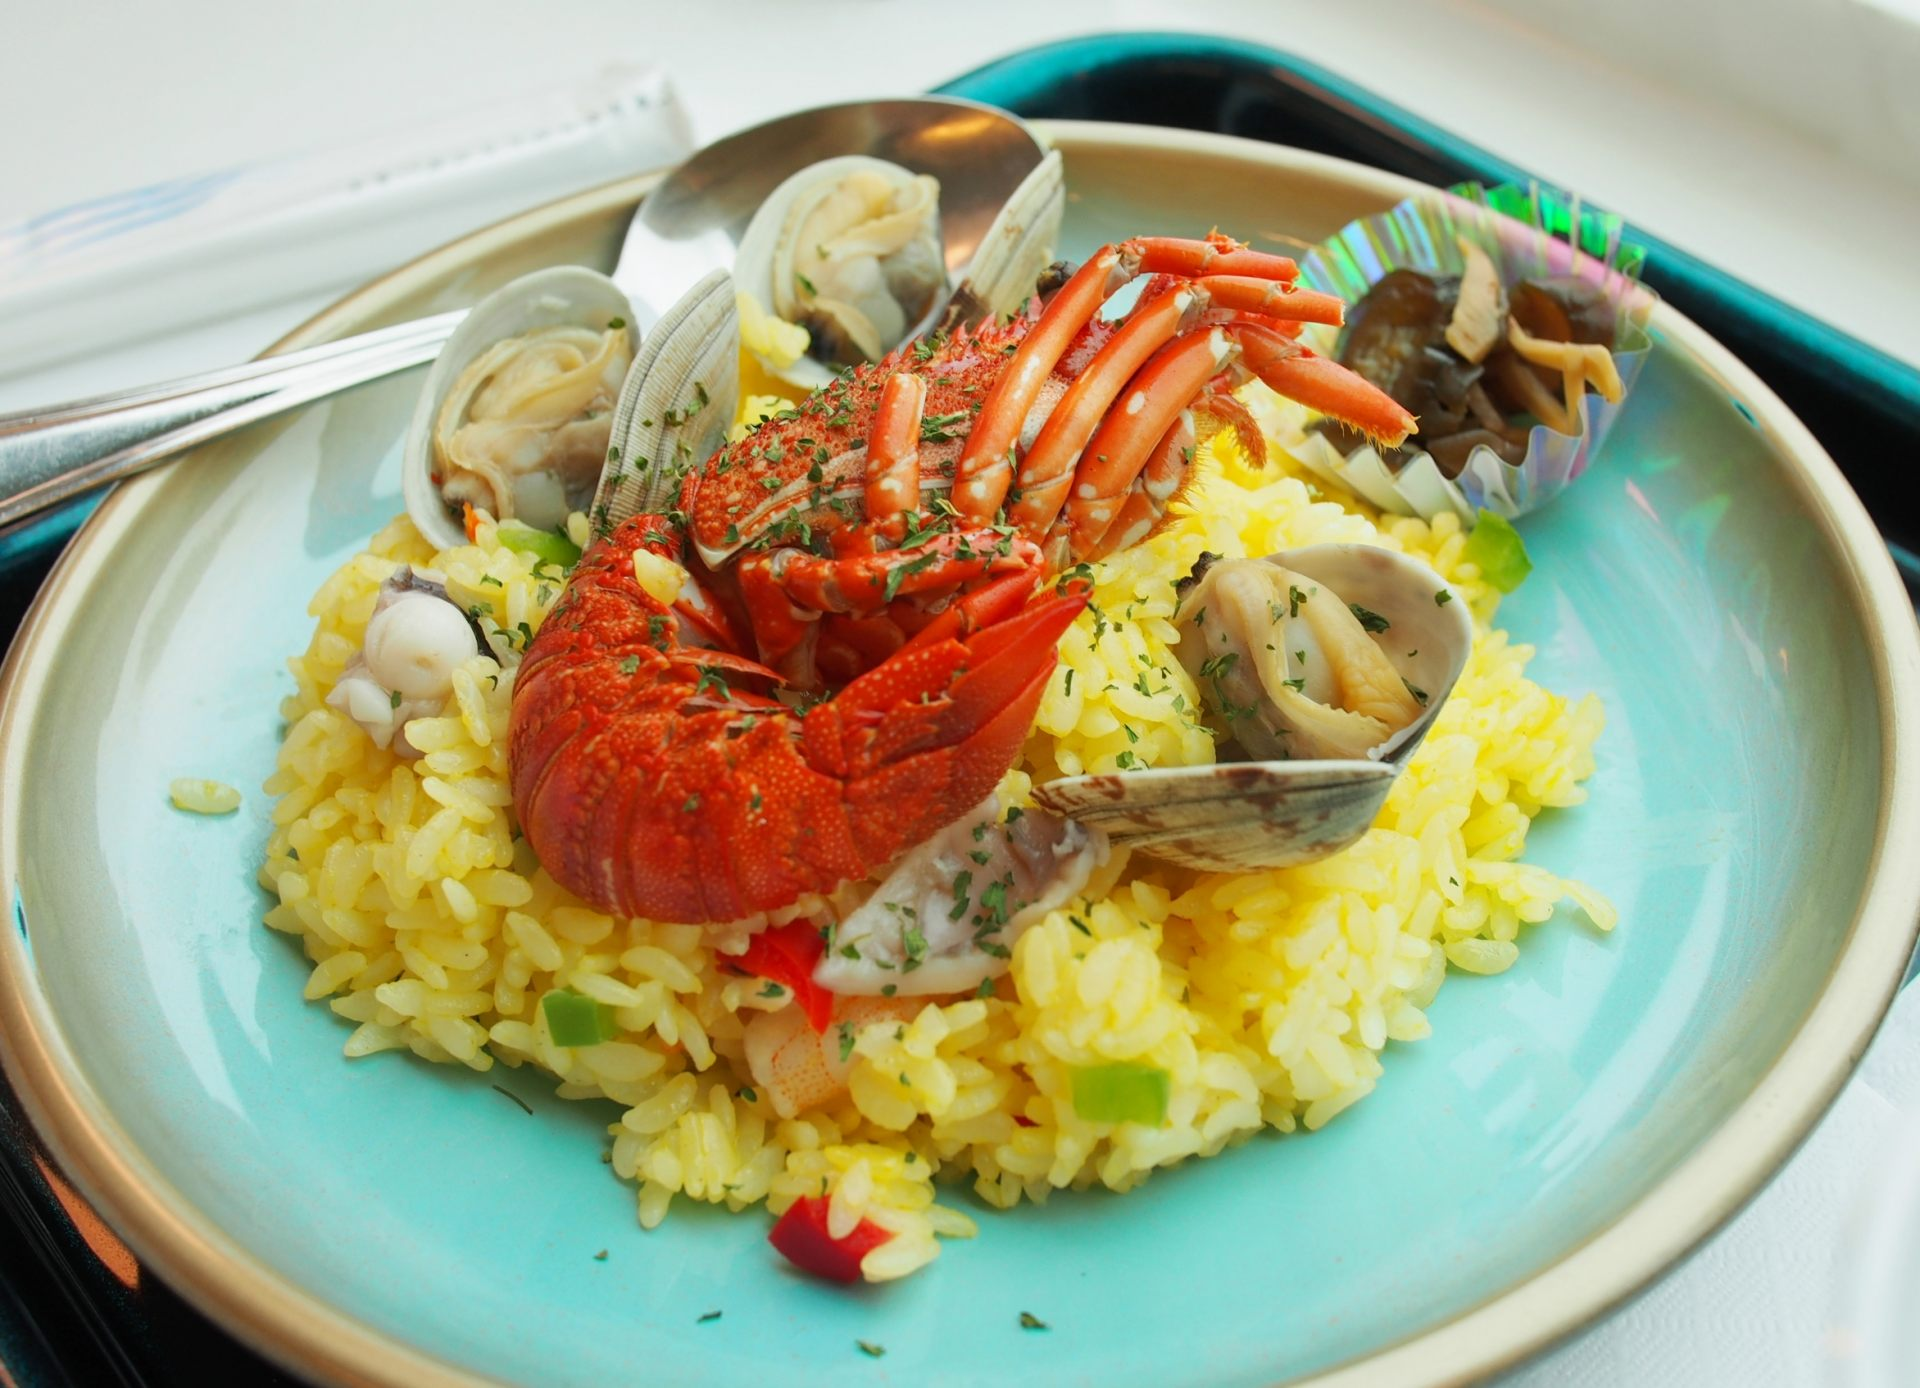 """The """"Seafood Pilaf"""" I ordered (1,340 yen)"""